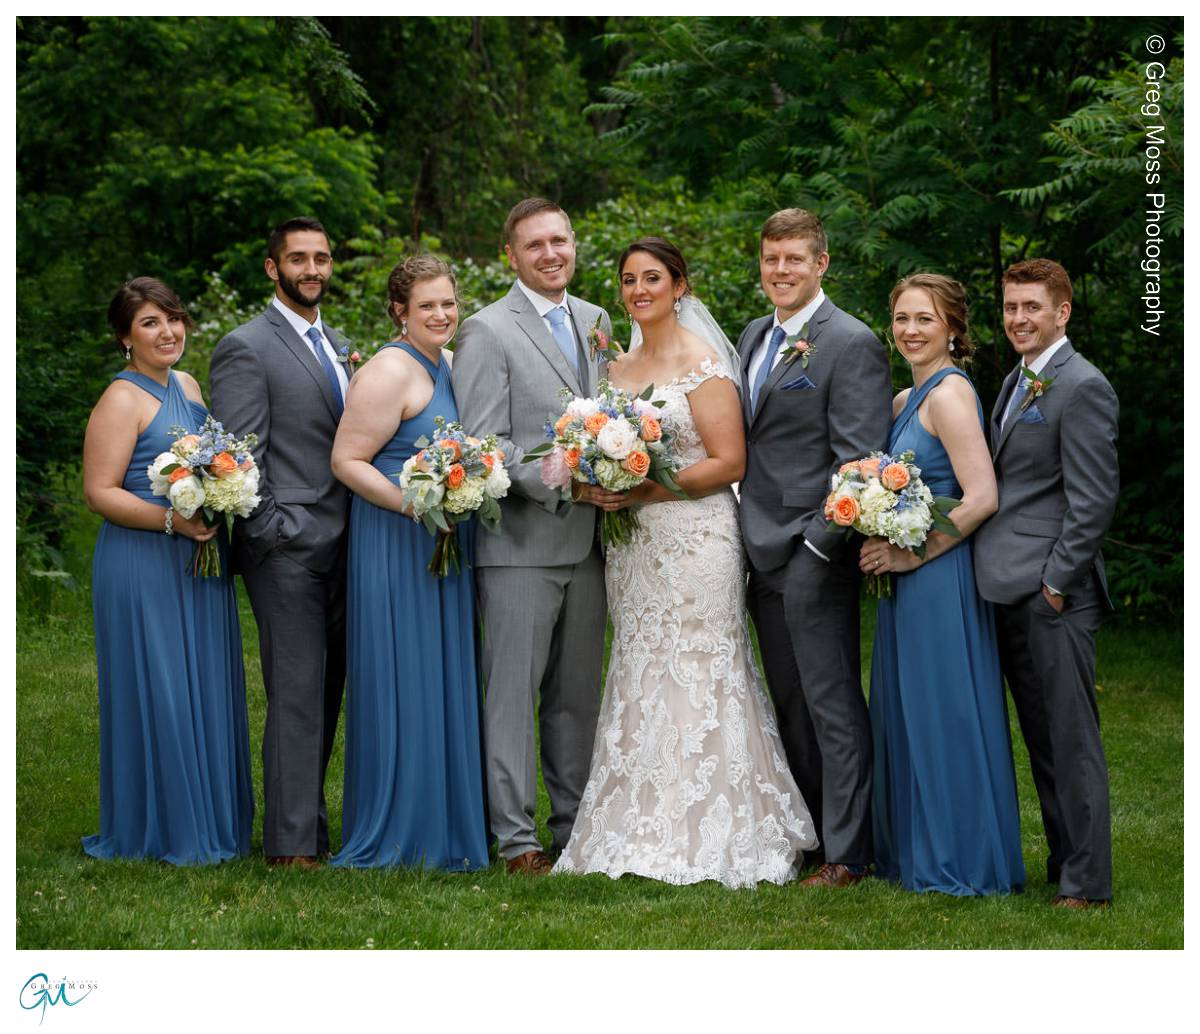 Wedding party surrounded by trees